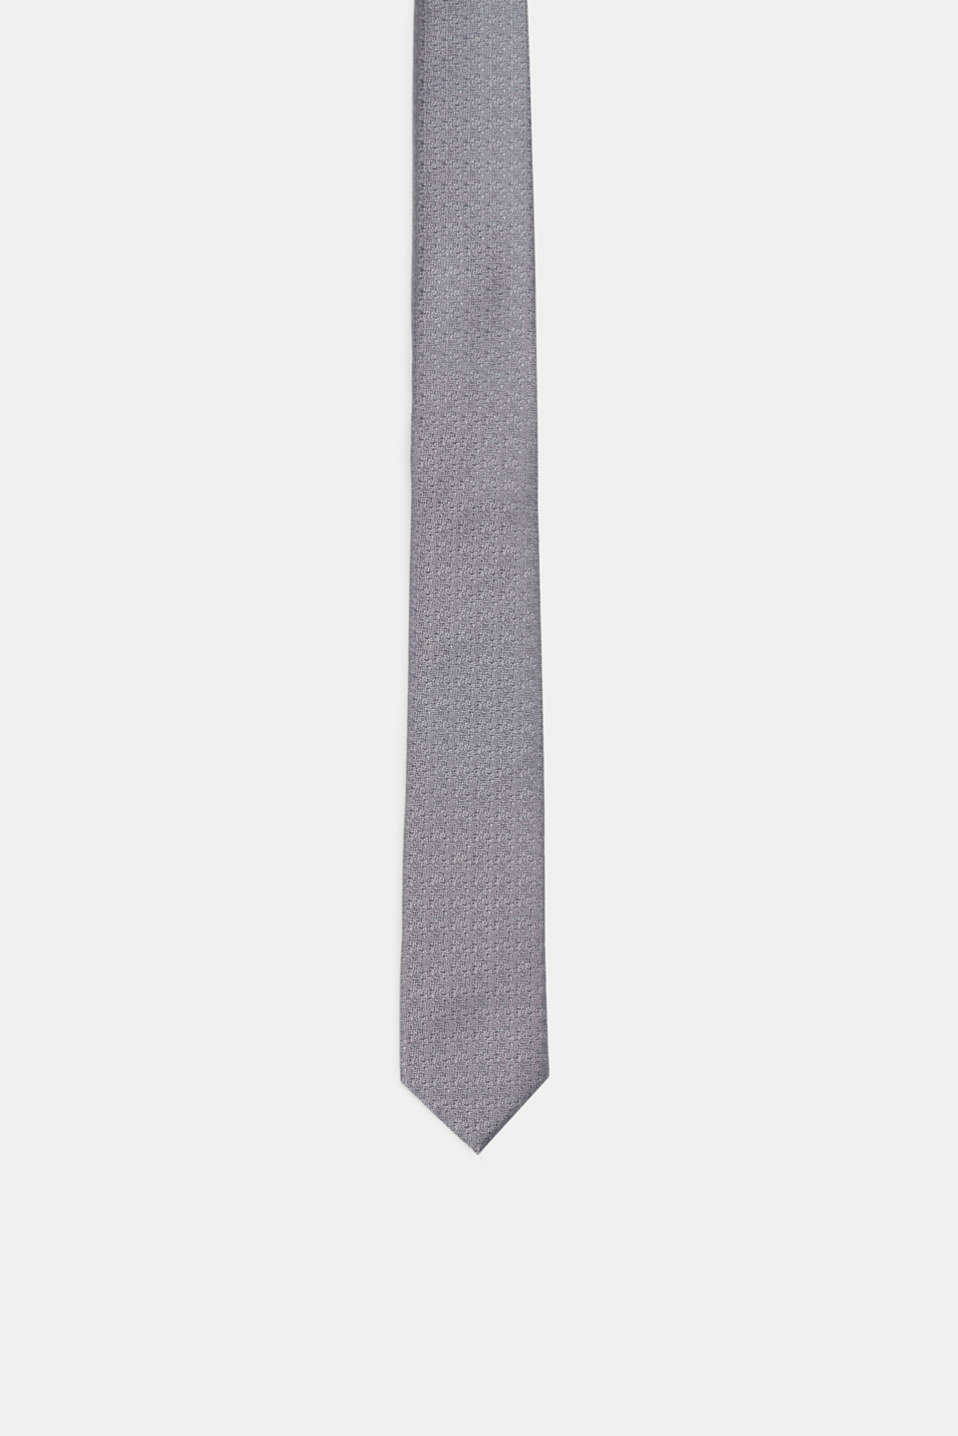 Esprit - Silk blend tie with a tonal textured pattern